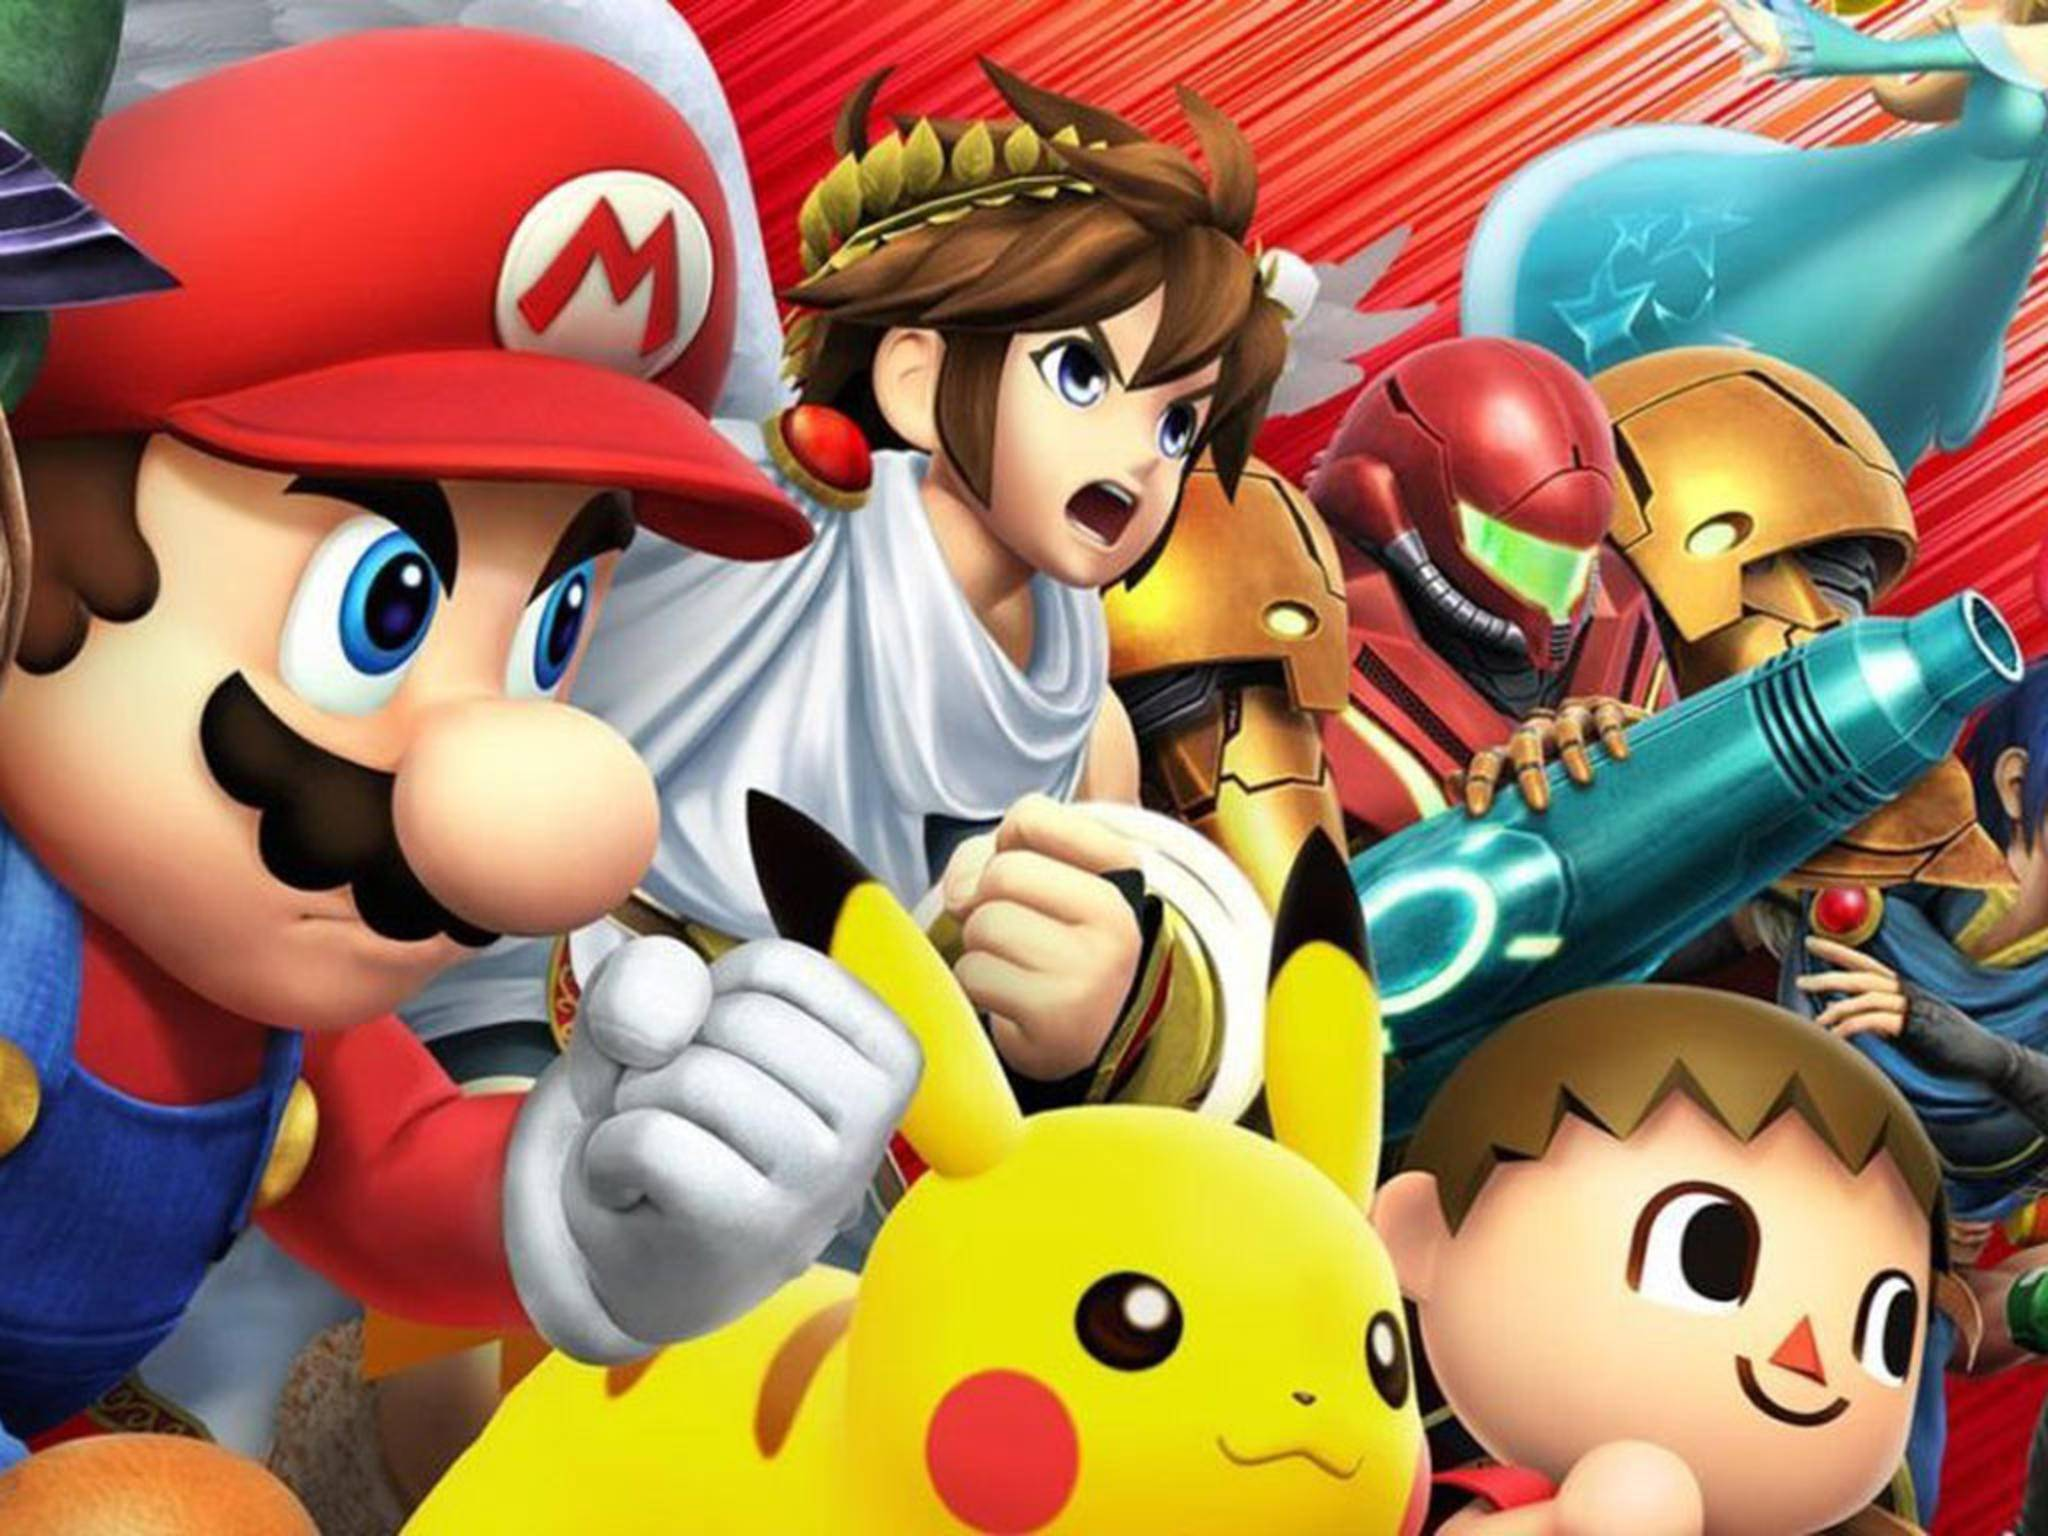 Super Smash Bros. Nintendo NX